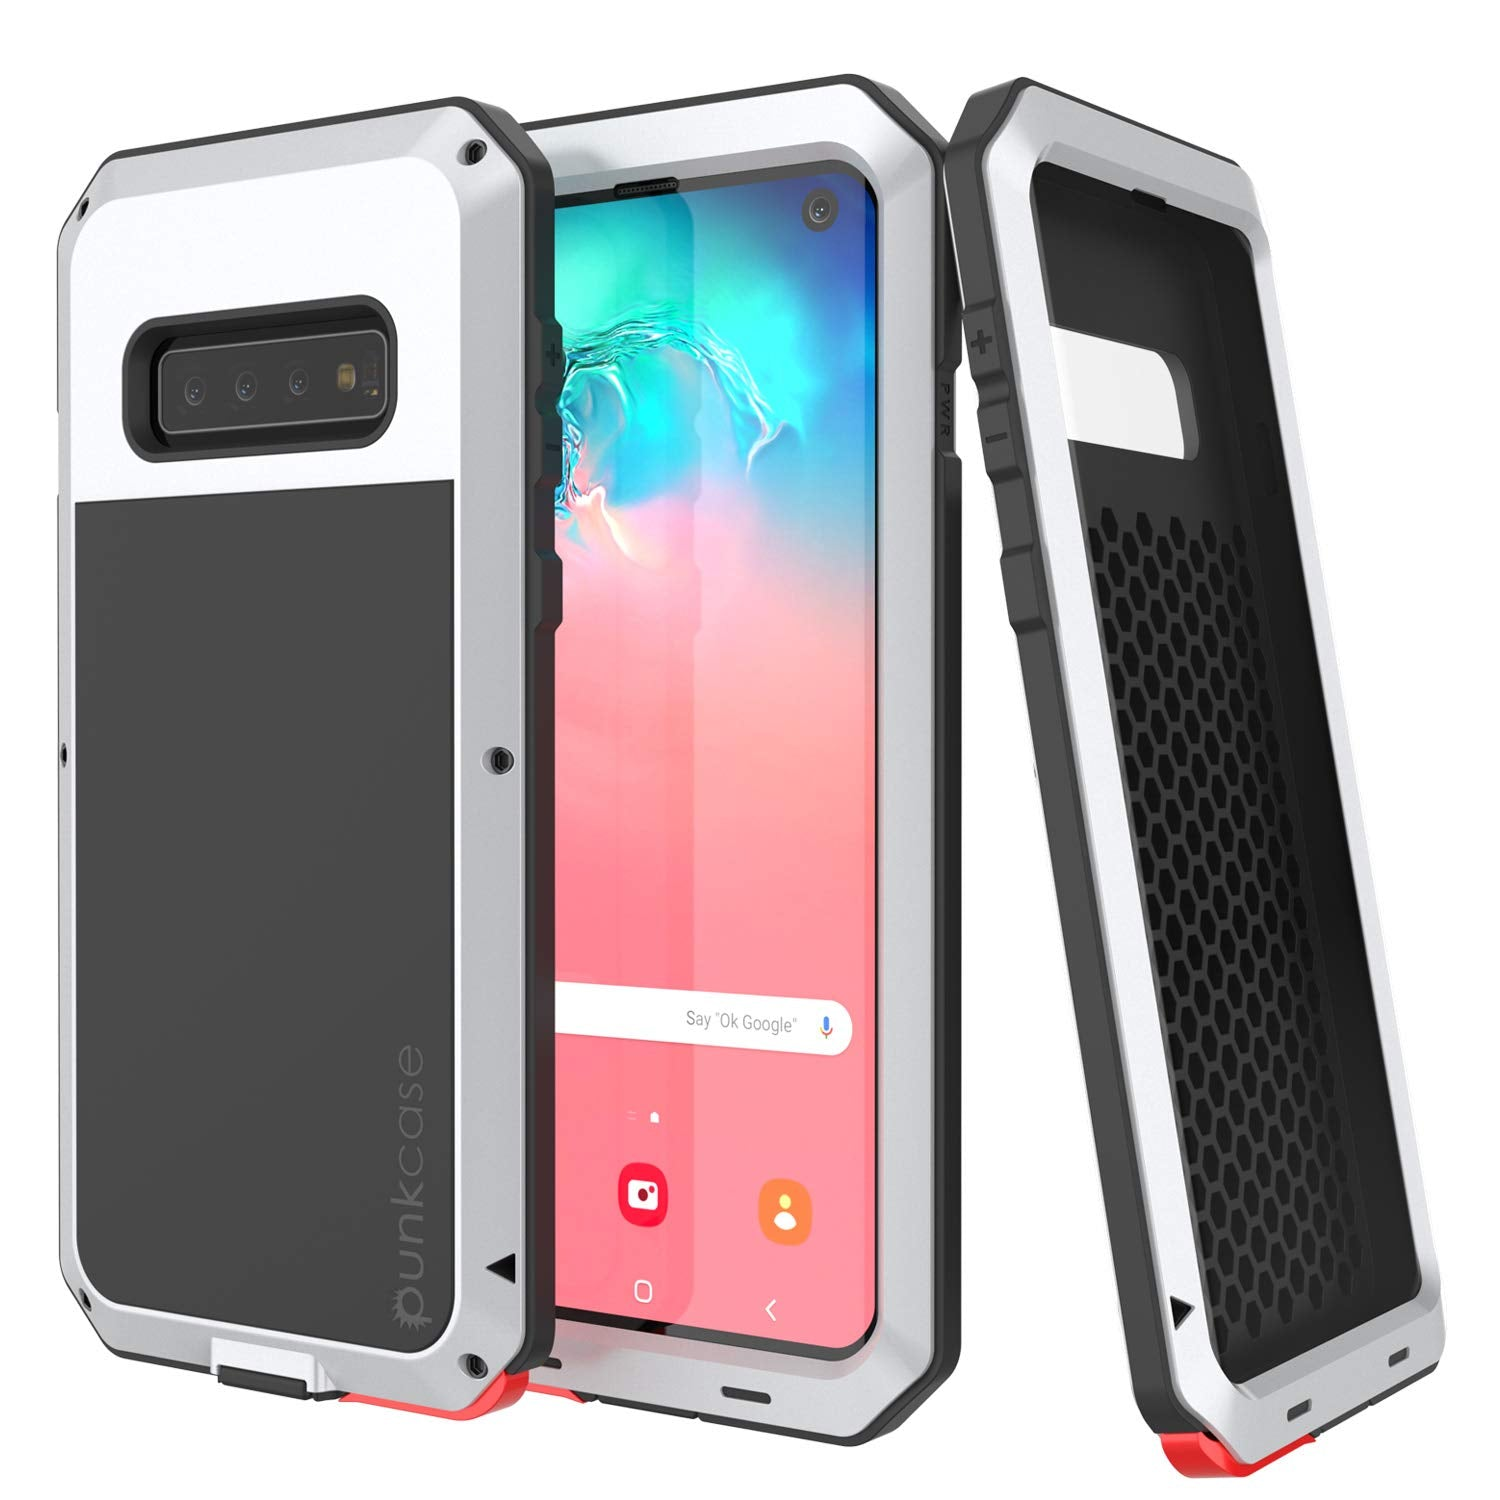 Galaxy S10 Metal Case, Heavy Duty Military Grade Rugged Armor Cover [White]